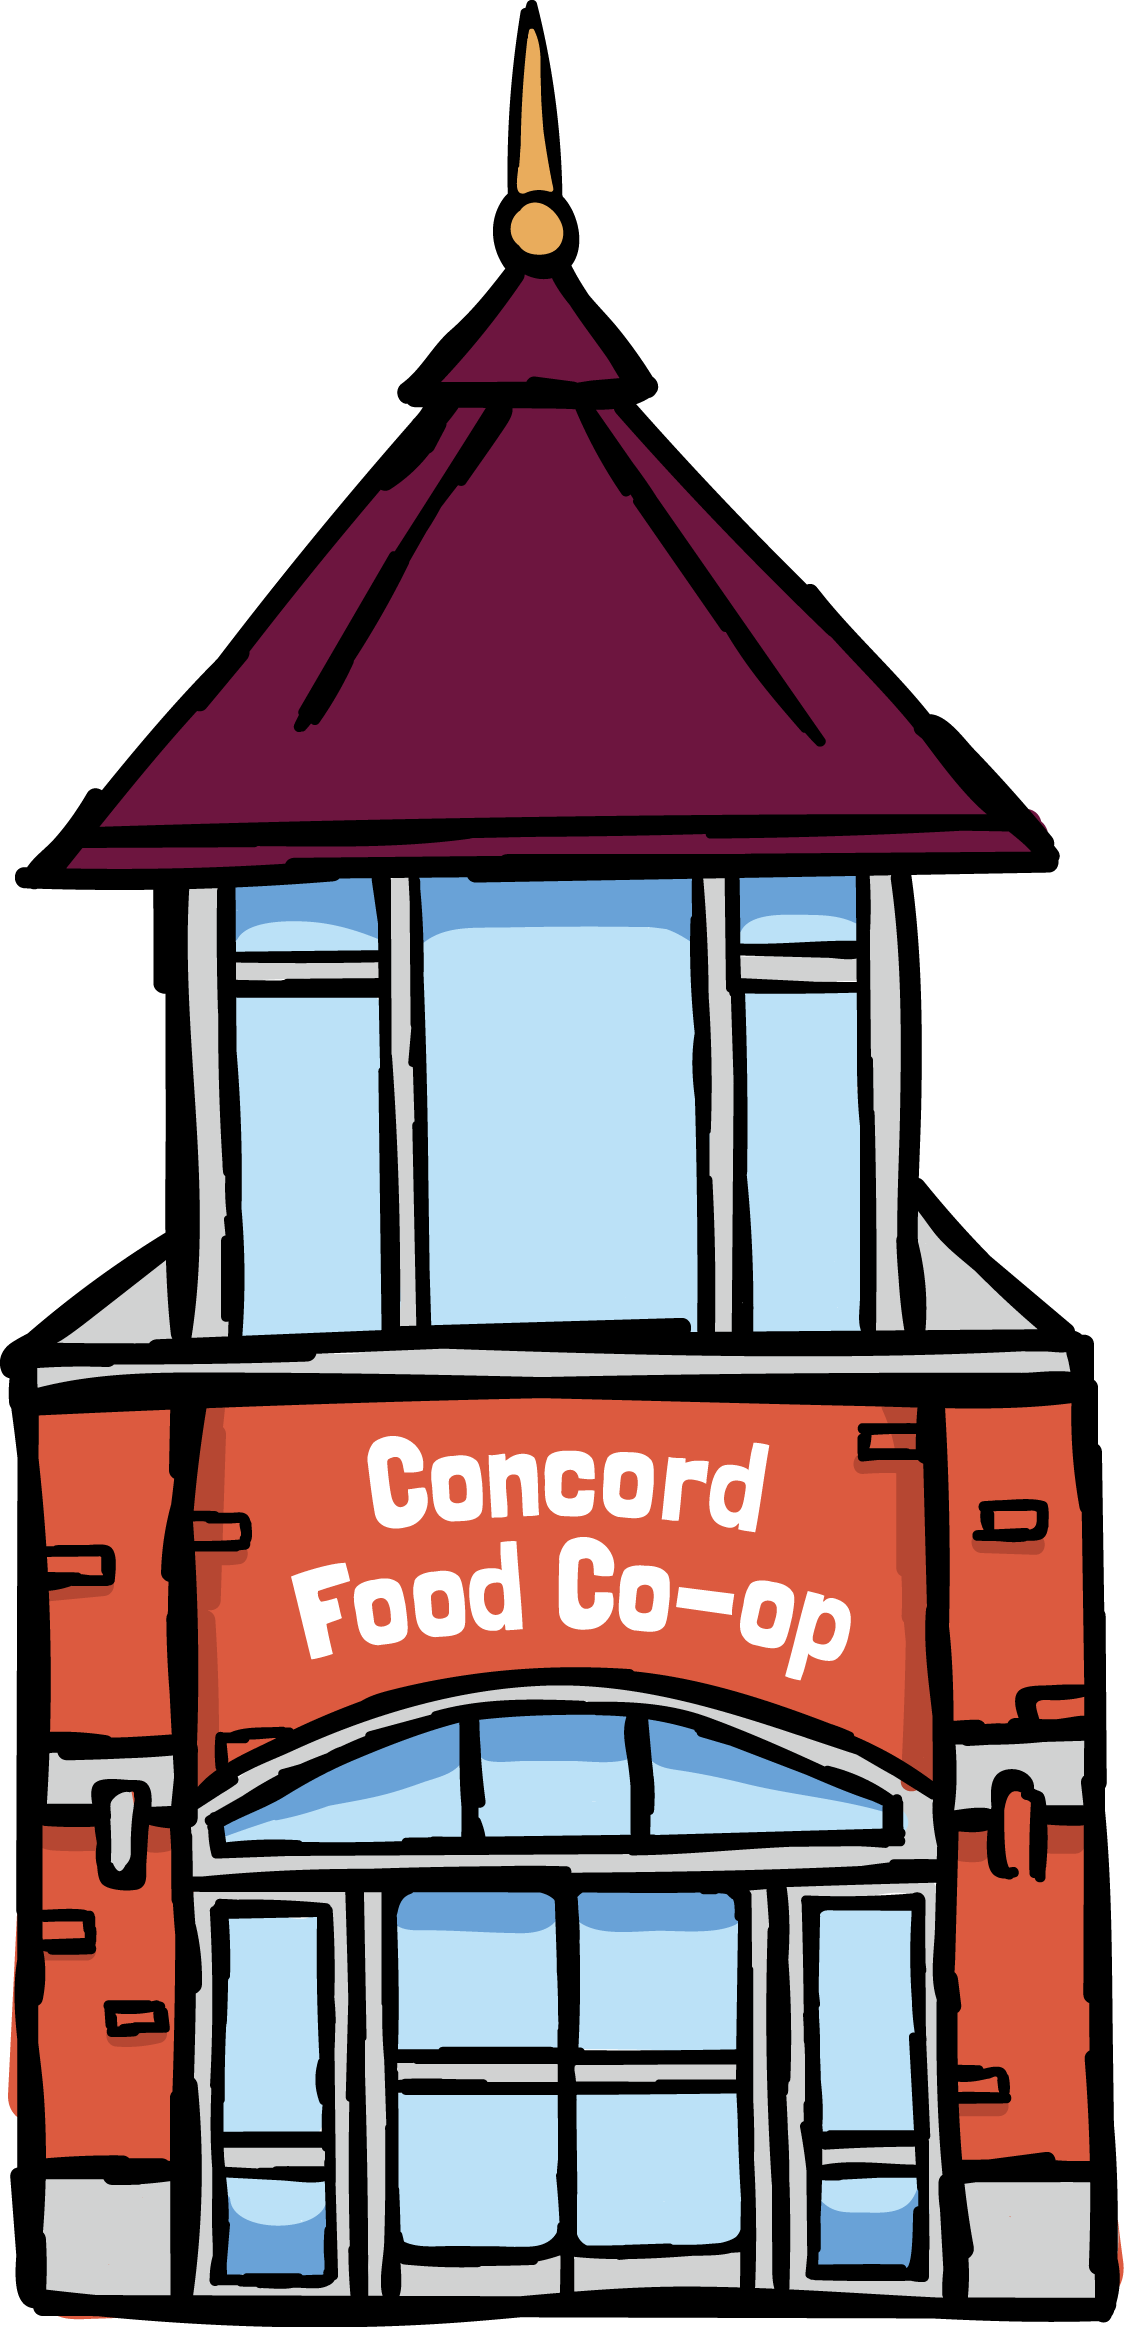 About concord food co. Psychology clipart cooperative